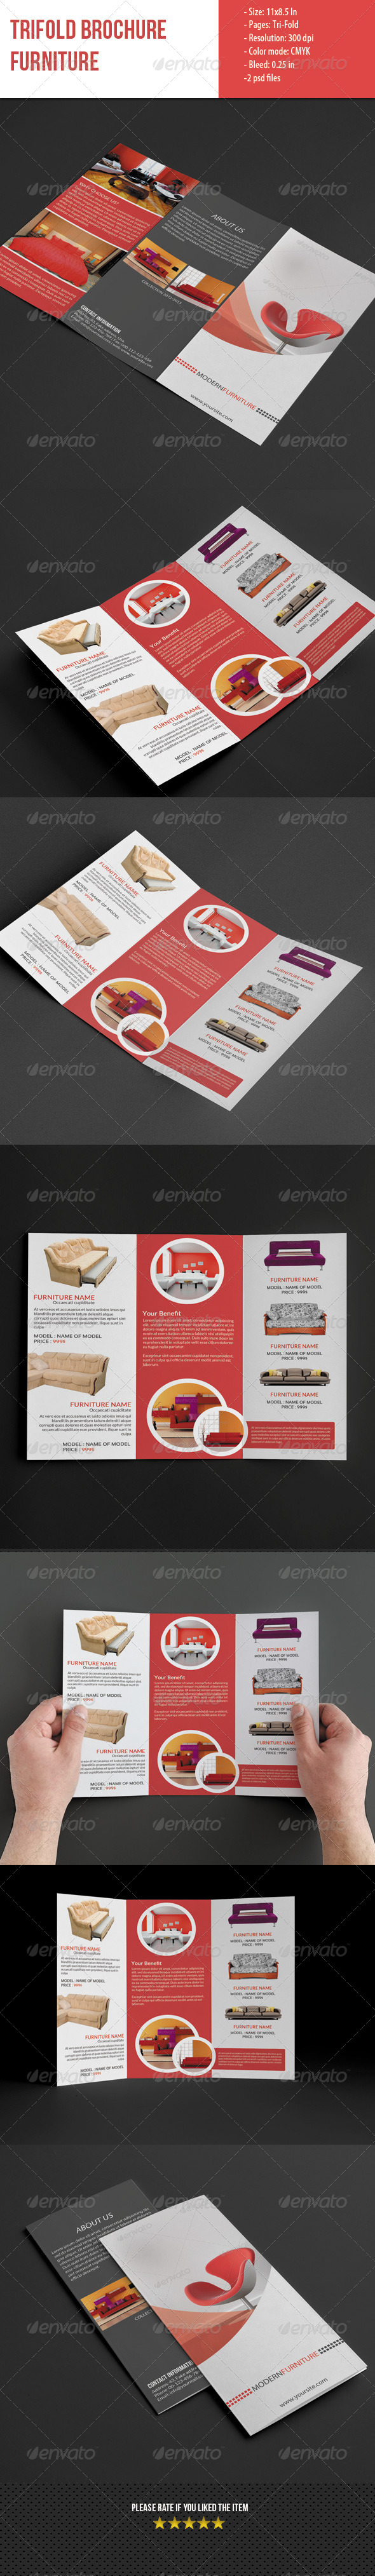 Trifold Brochure for Furniture